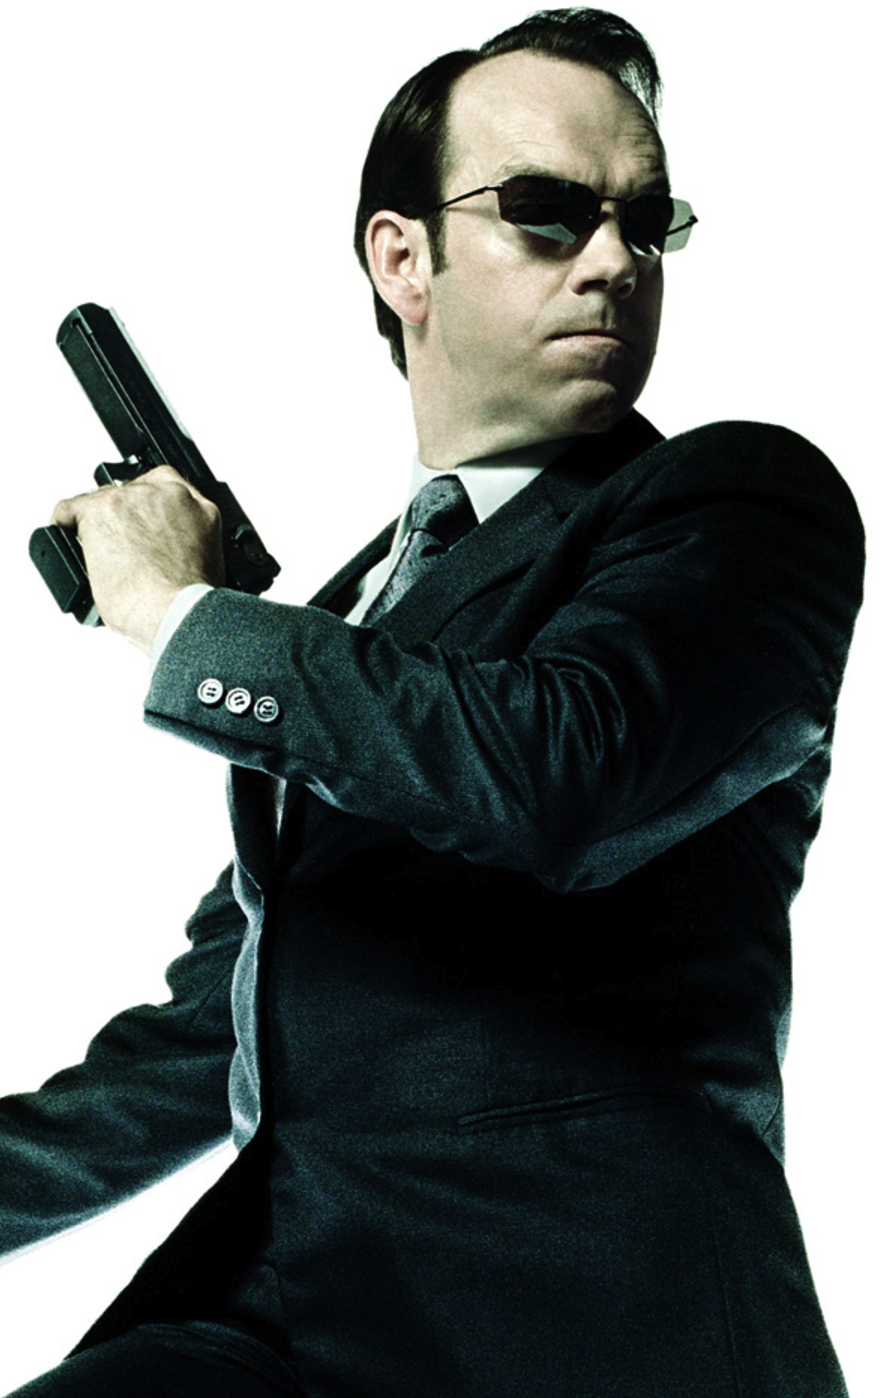 image agent smith the matrix movie hd wallpaper 2880x1800 4710 png